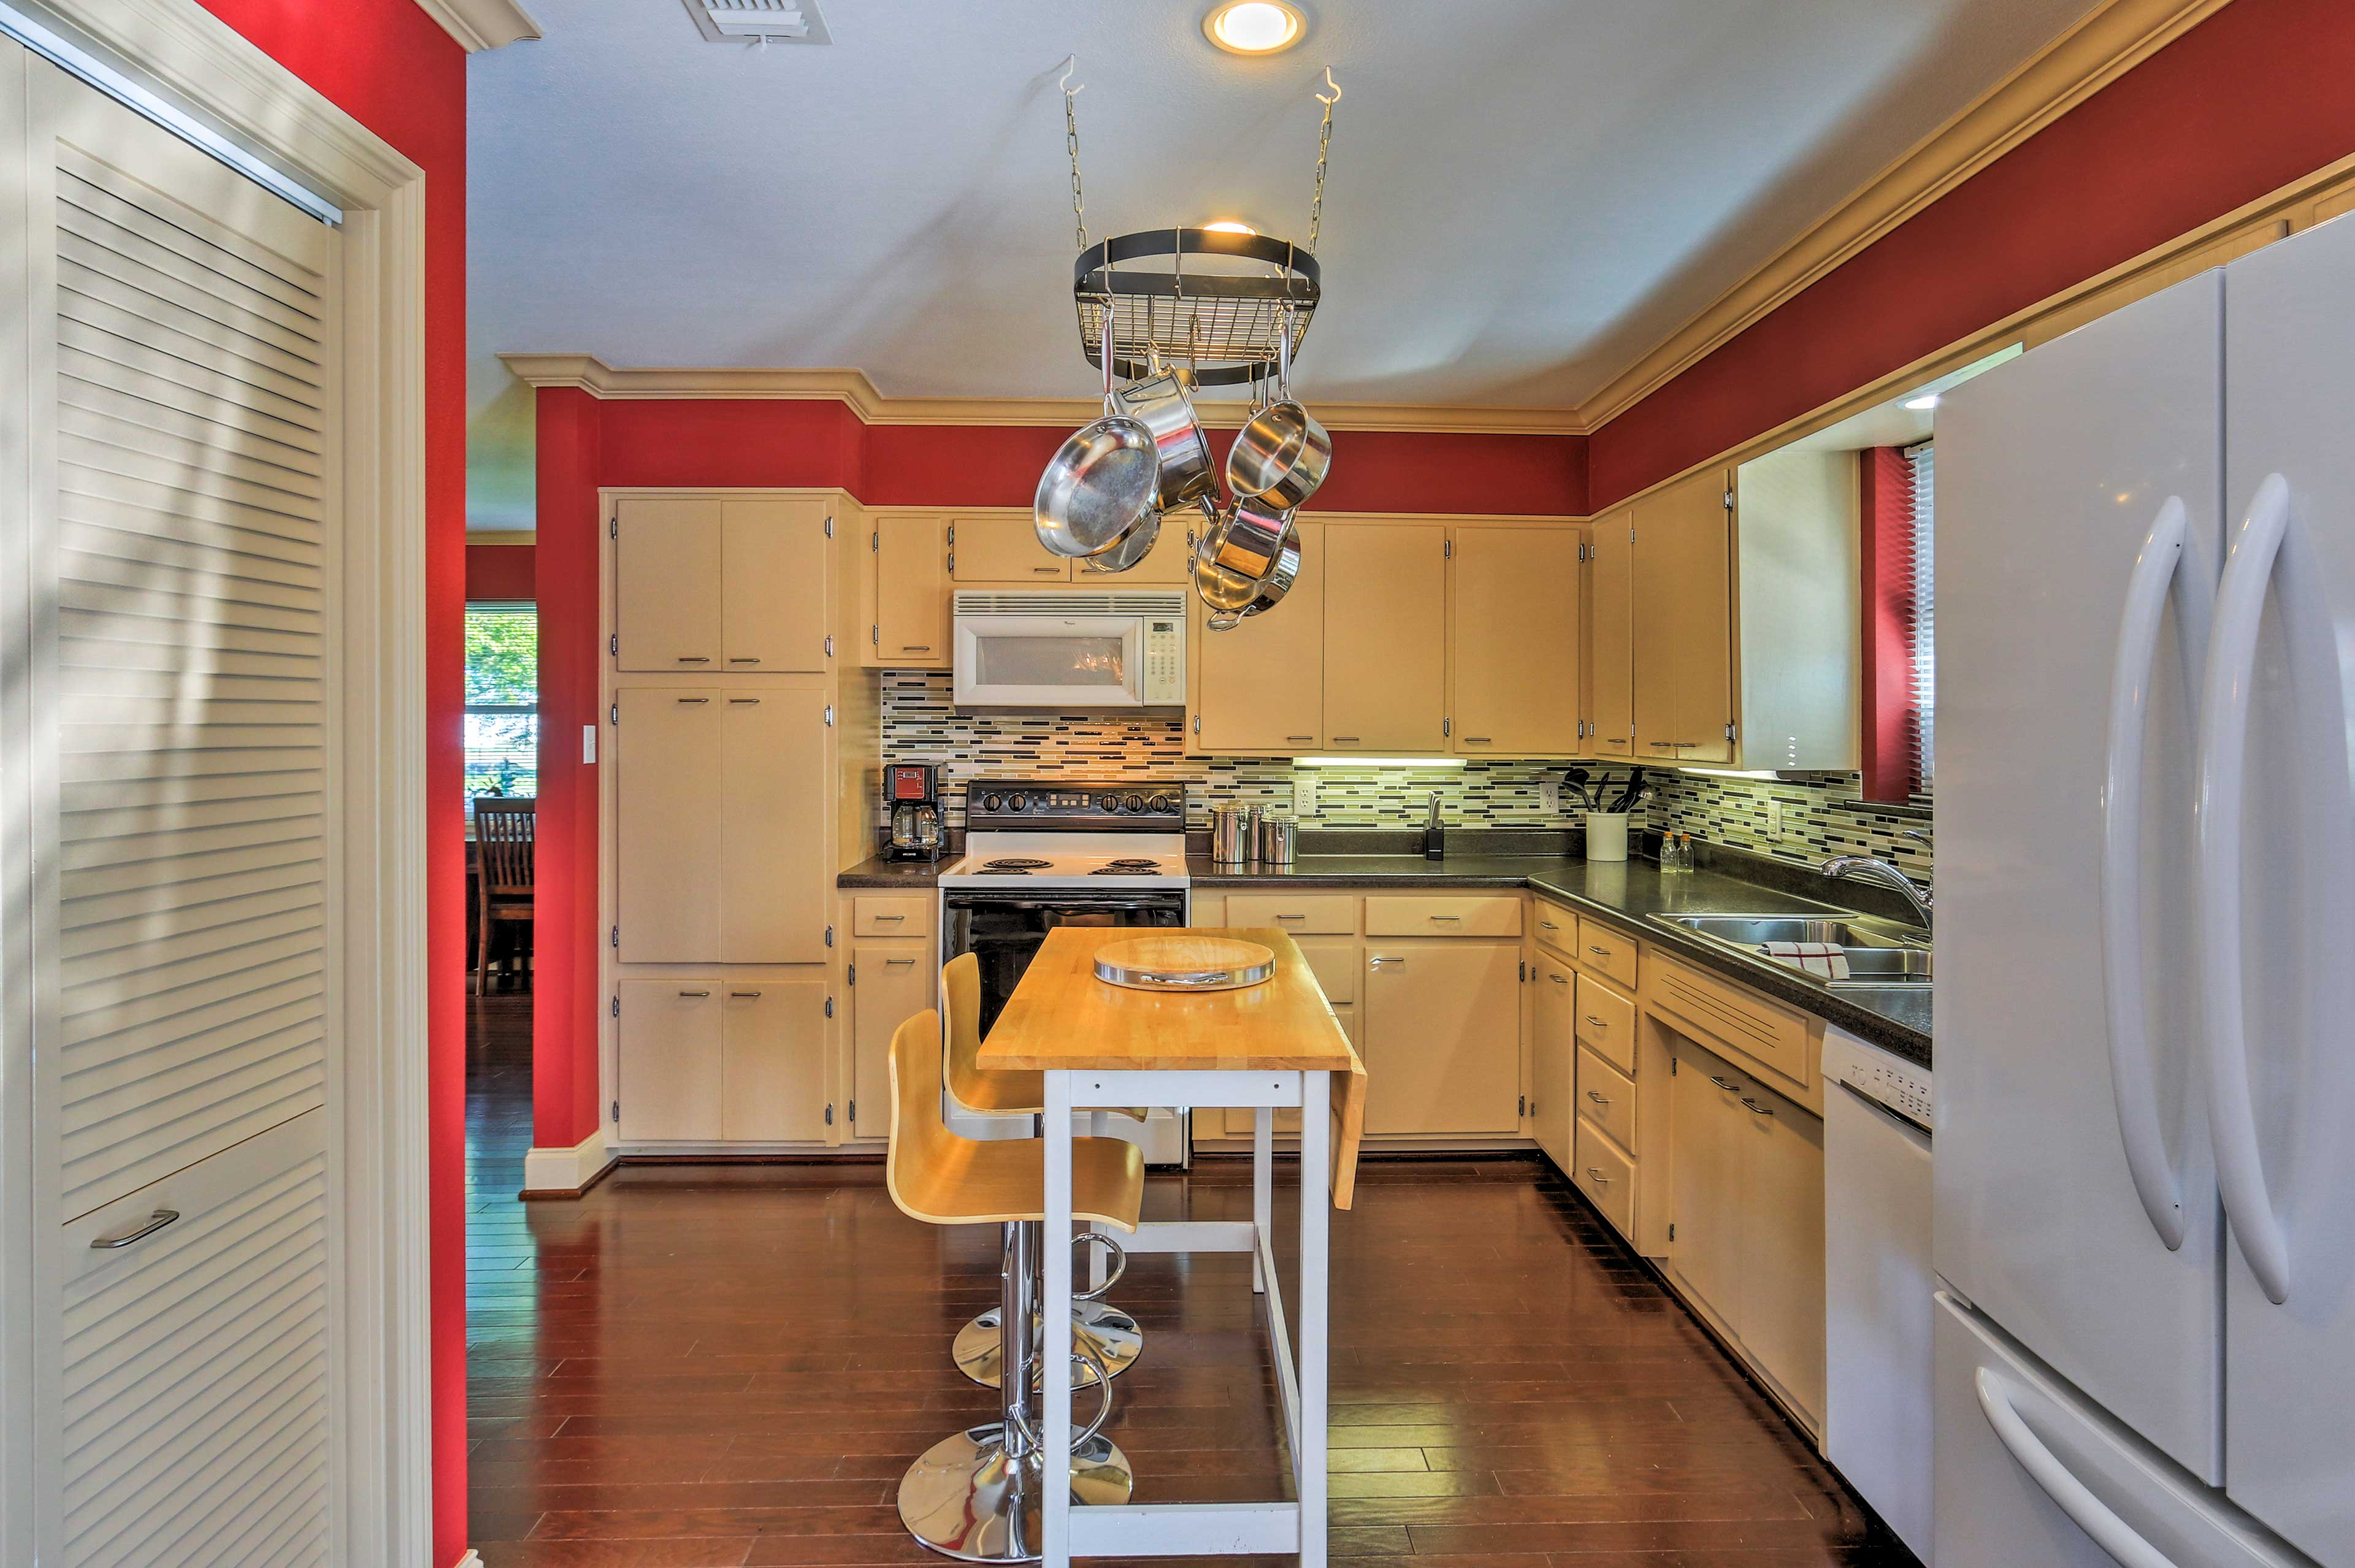 Prepare home-cooked meals in the spacious, fully equipped kitchen.